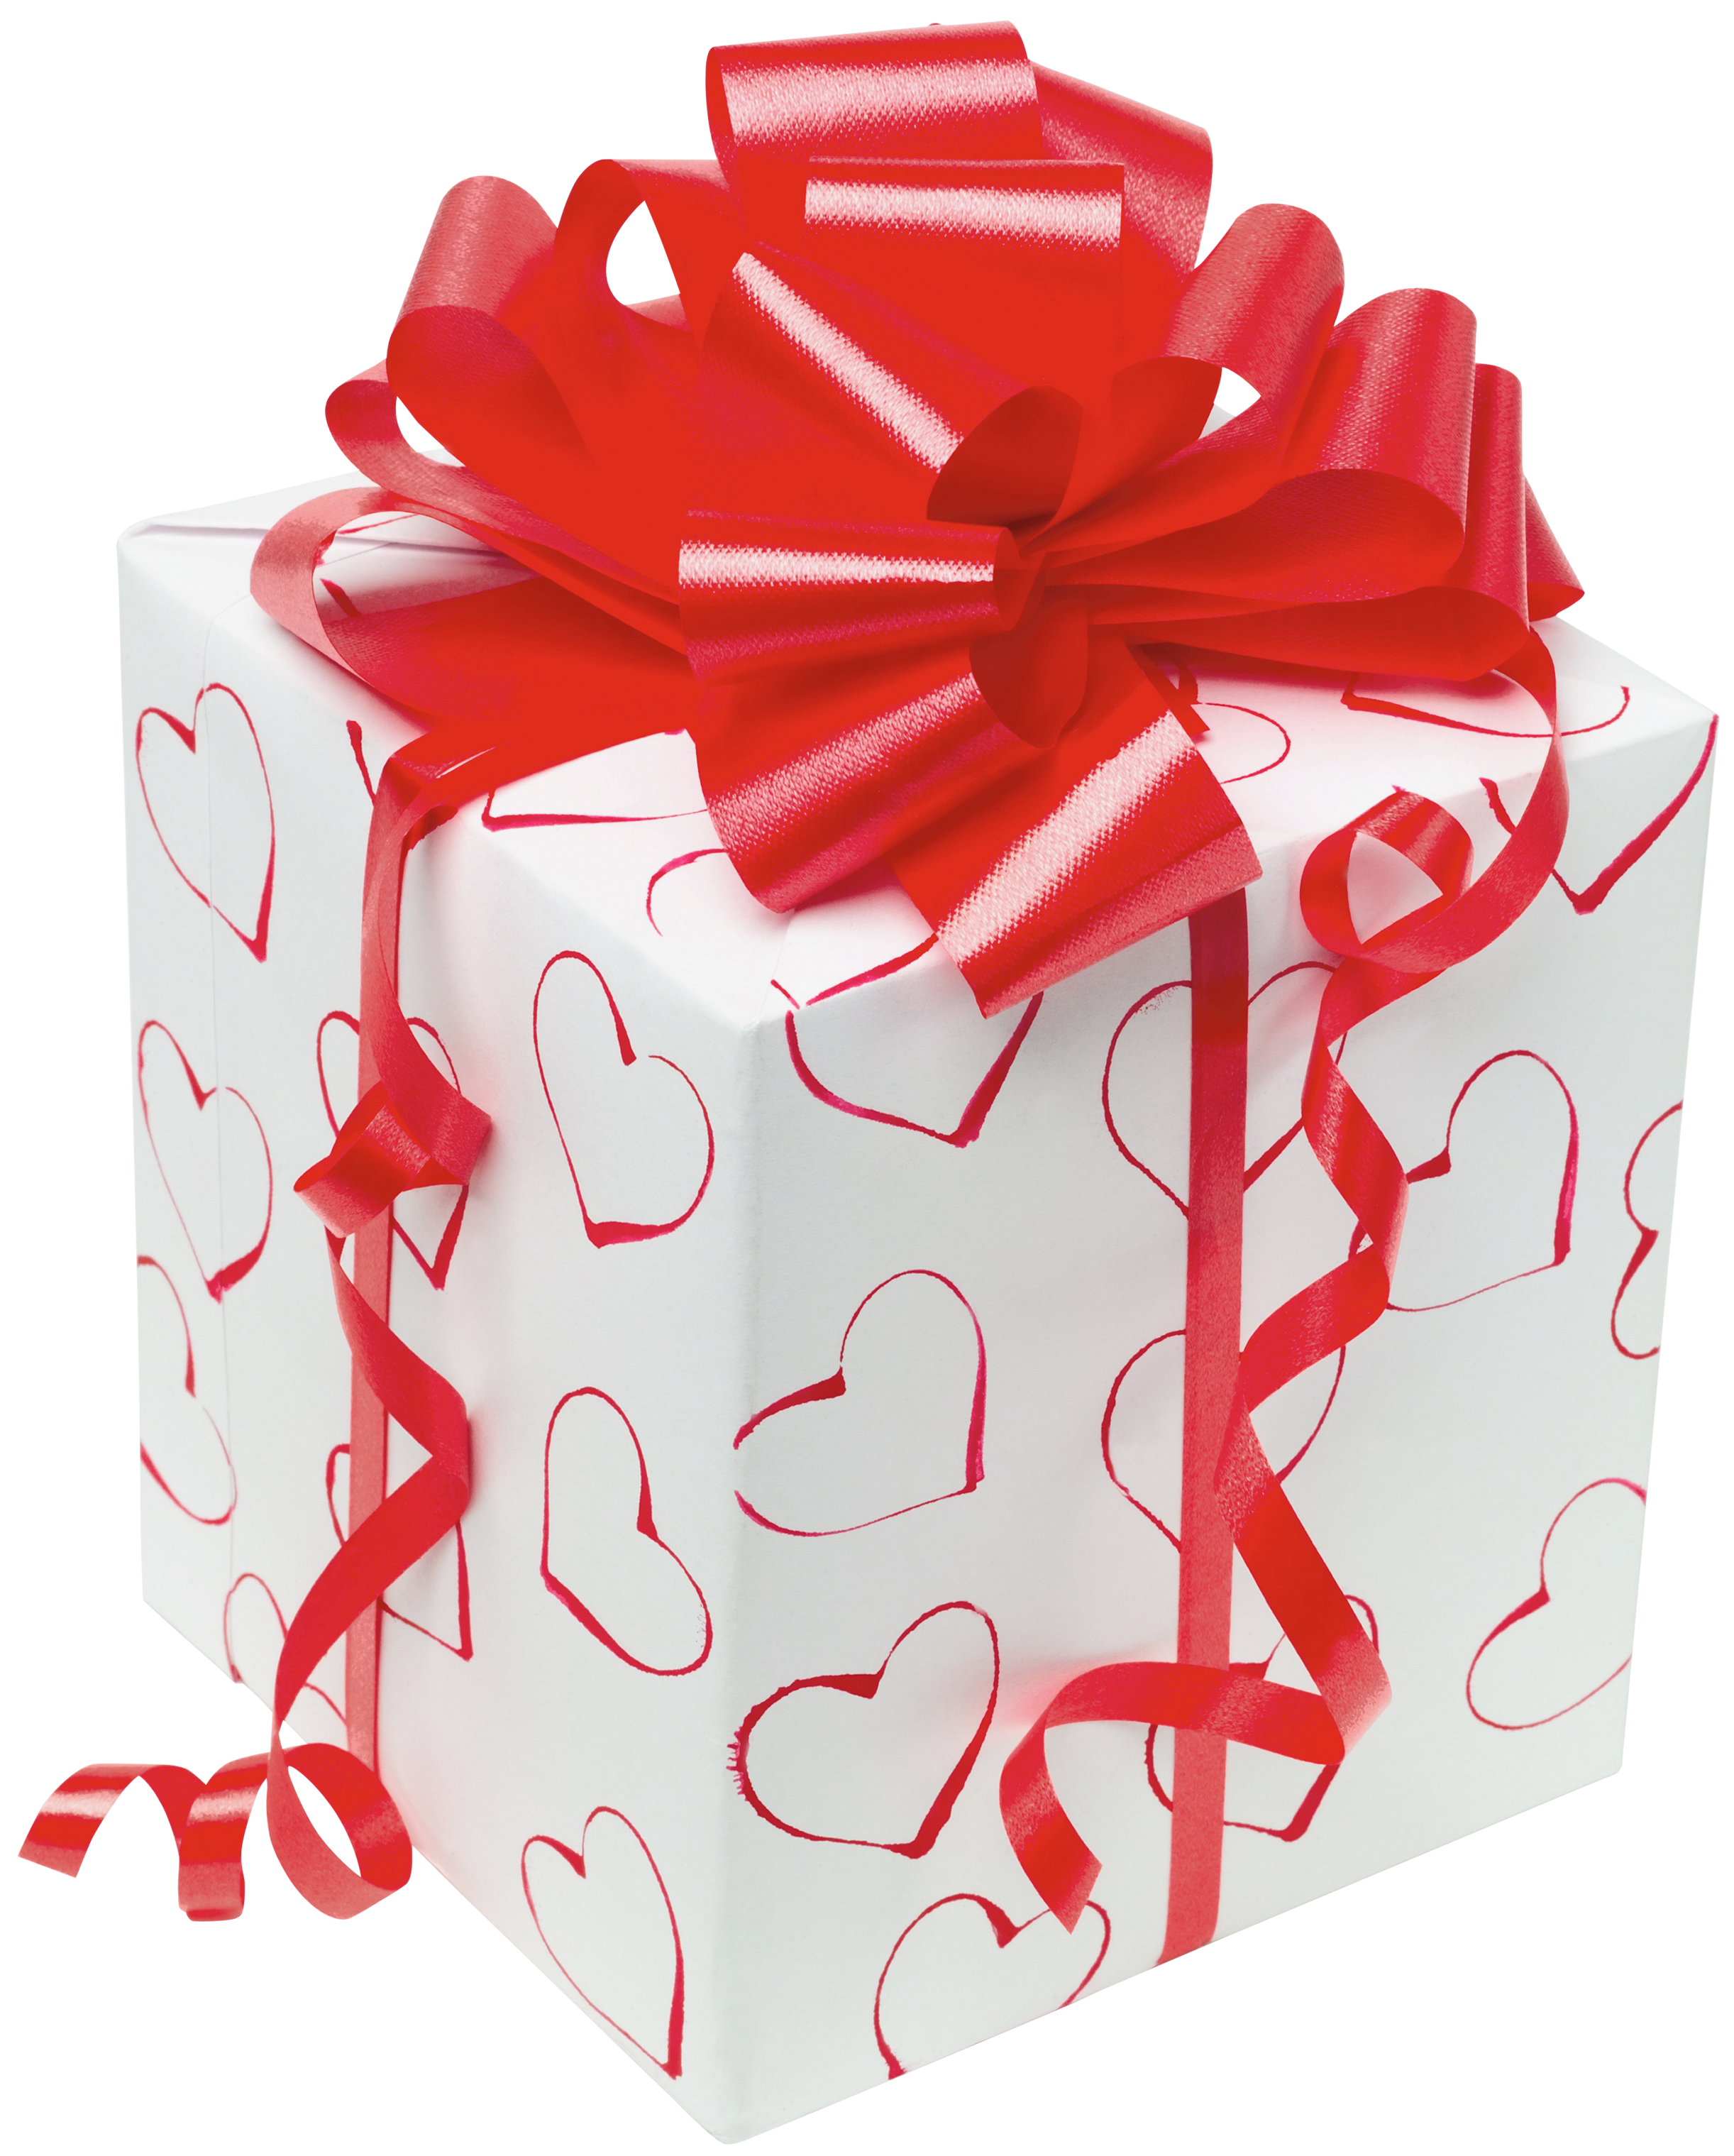 Gift boxes png. Box image free download